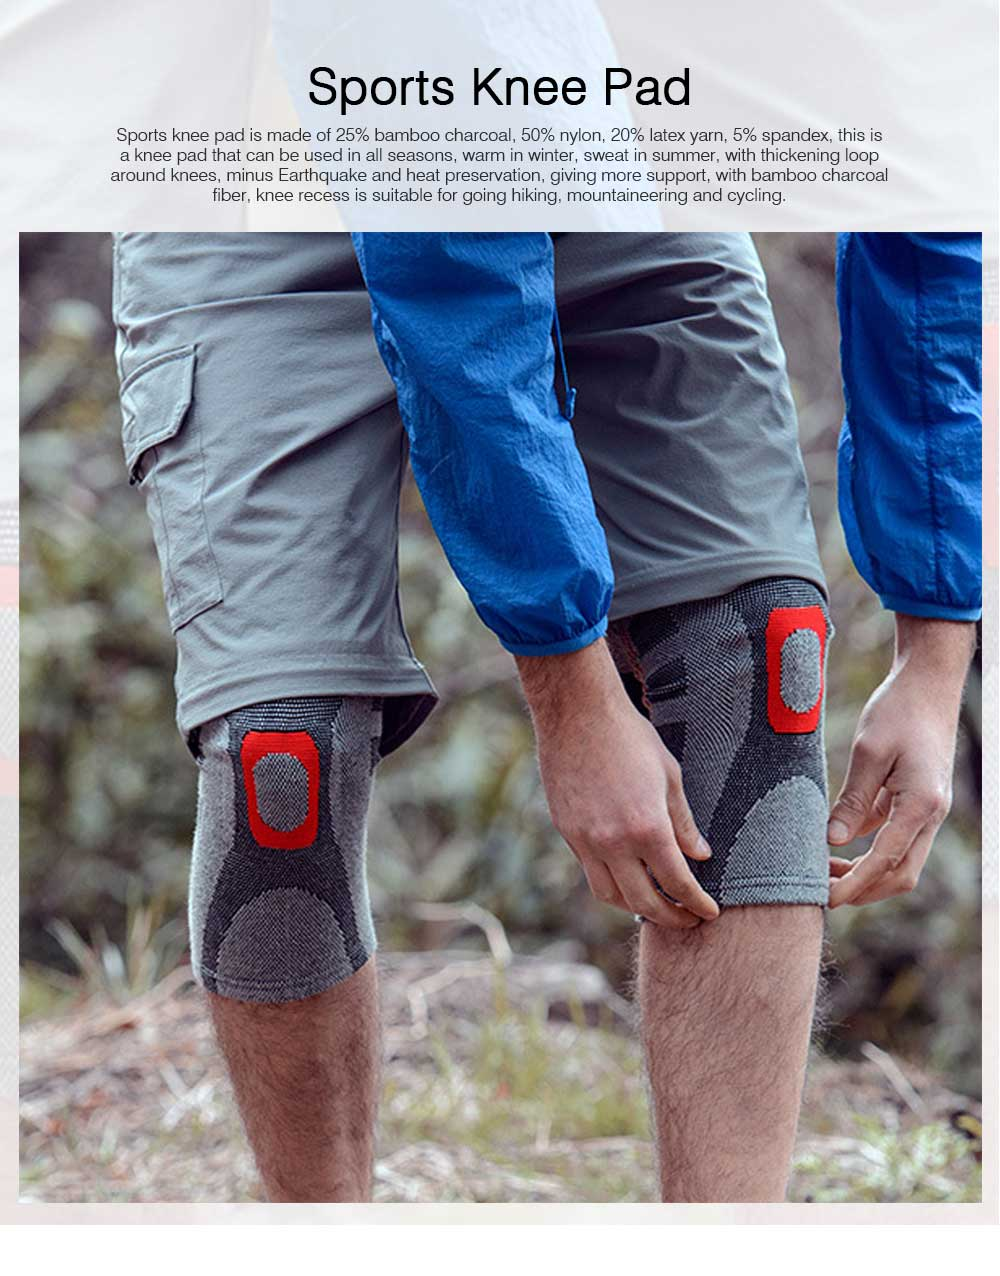 Anti-slip Sports Knee Pad Nylon High Elasticity Knee Support Guard Outdoor Mountaineering Cycling Fitness Breathable Stretch Knit Protector Gear 0